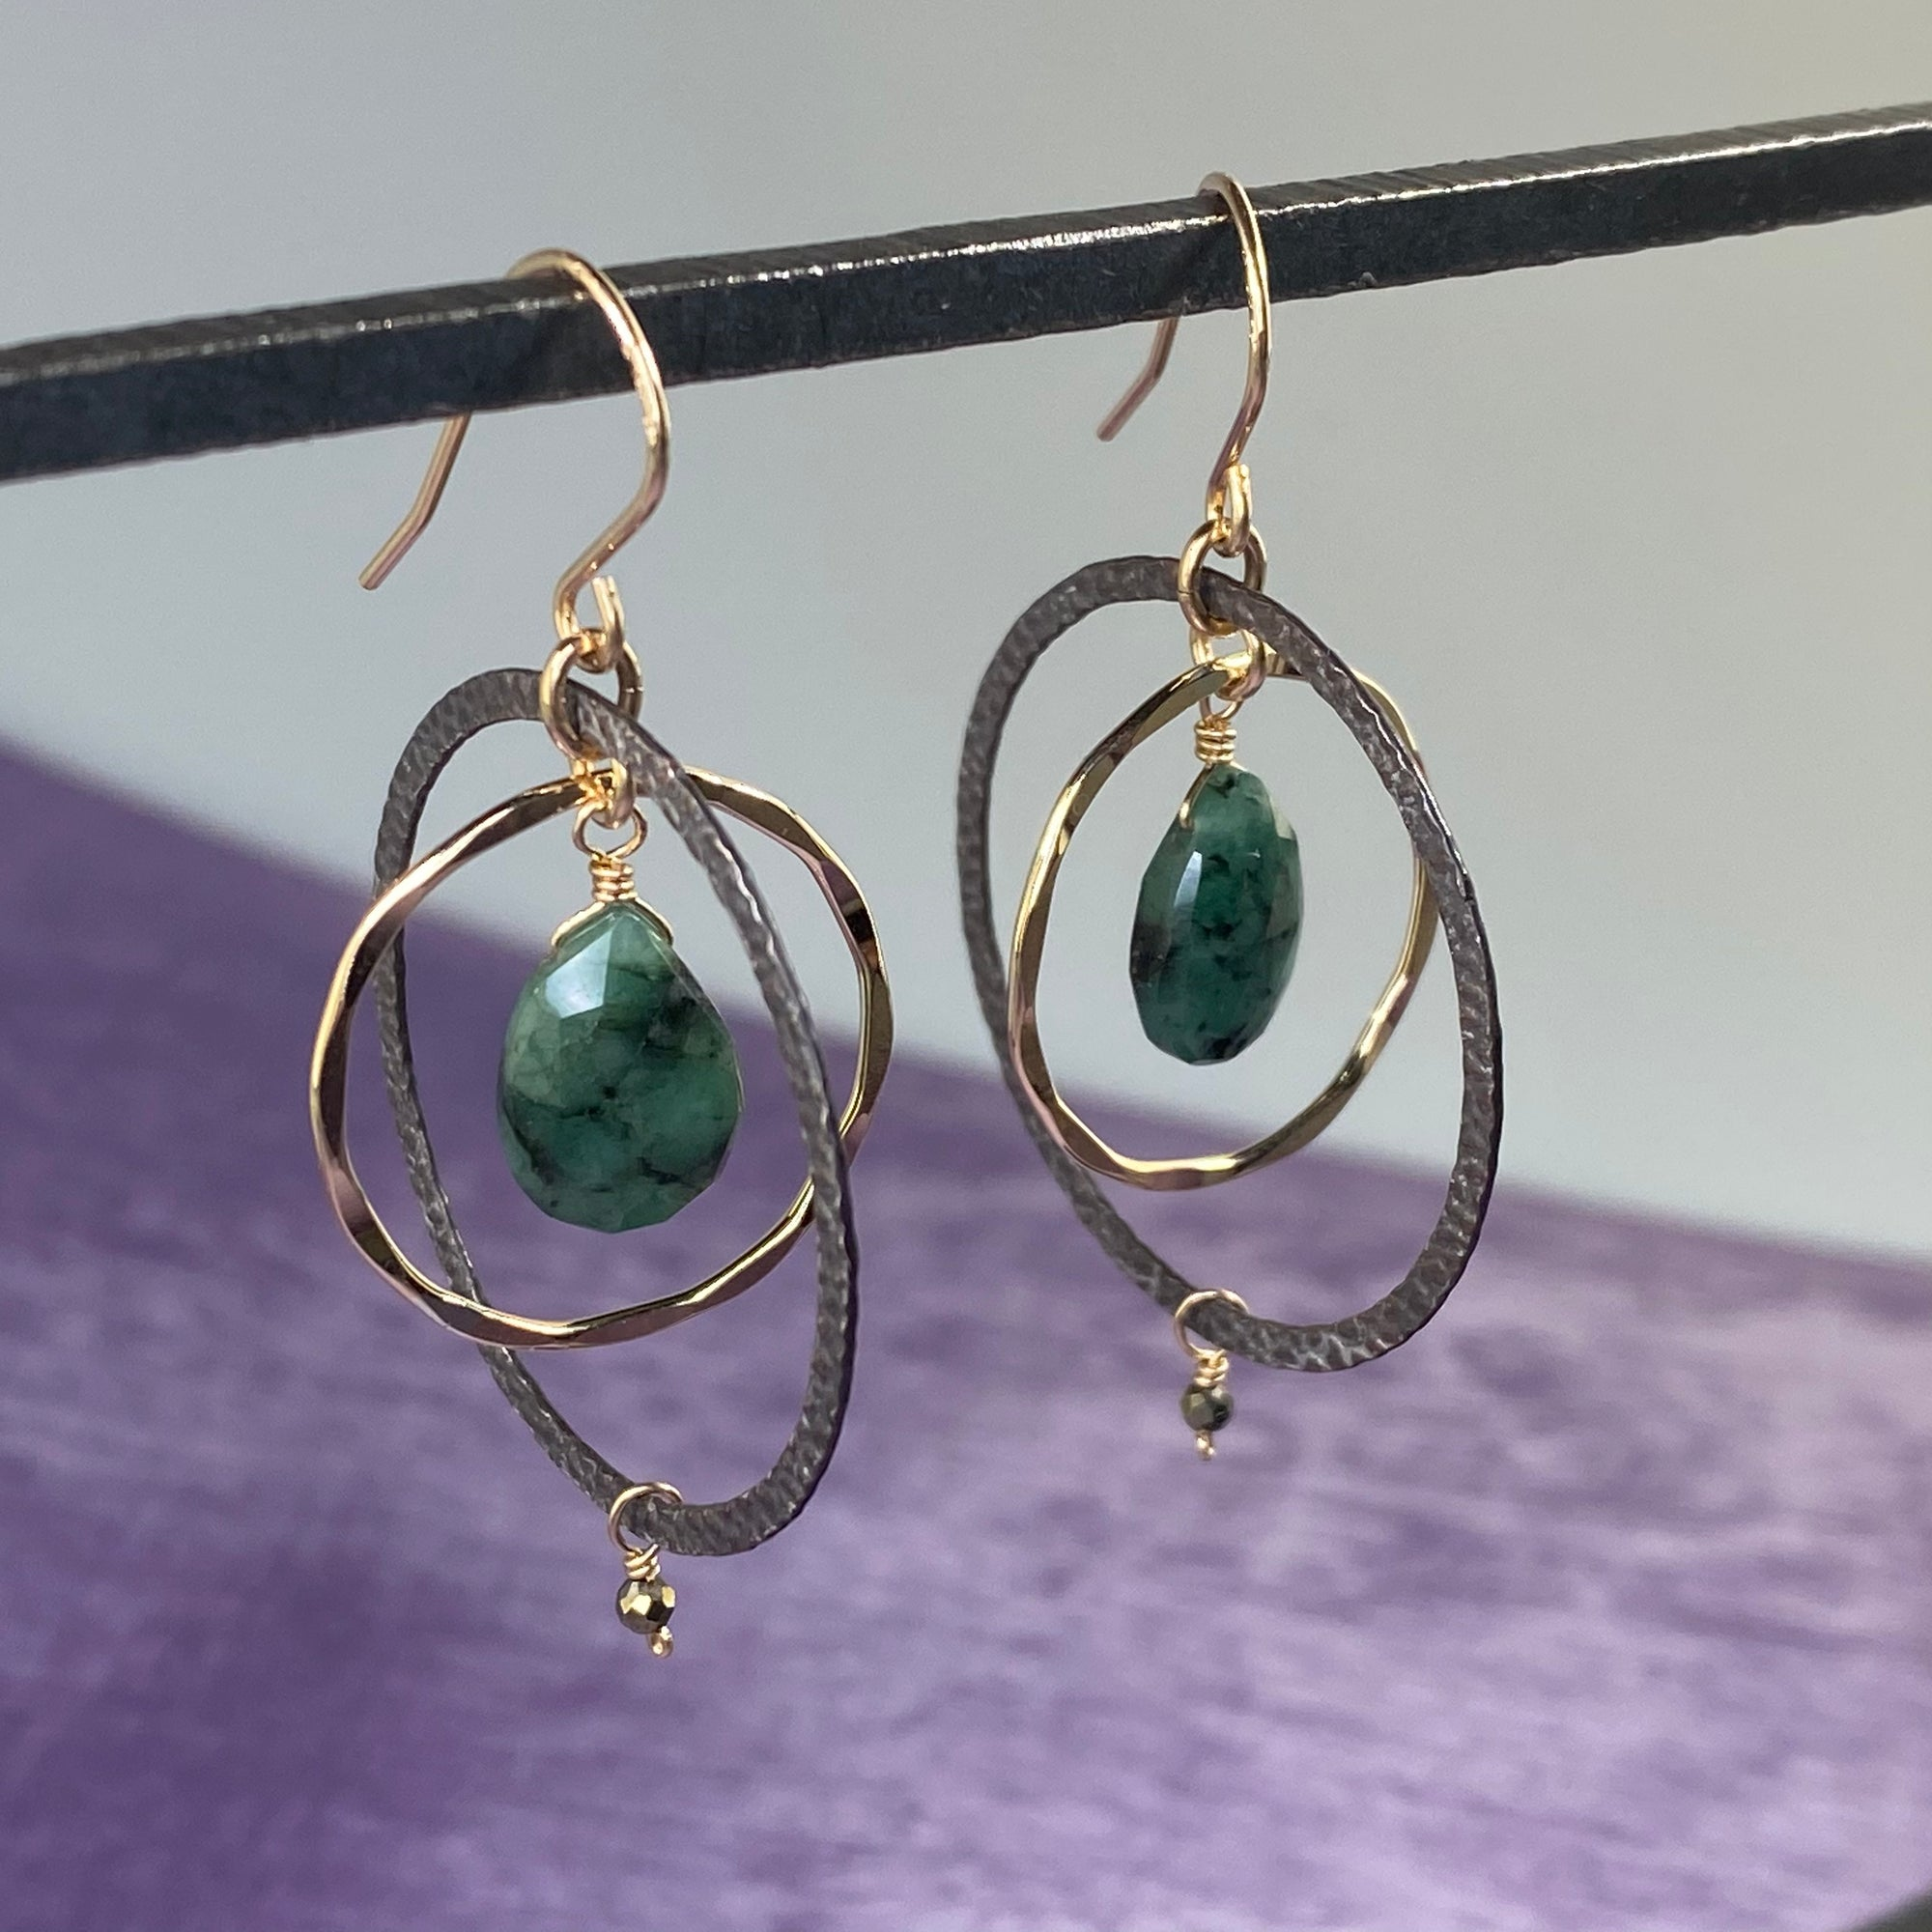 Emerald Concentric Circle Earrings - Heart of the Home PA